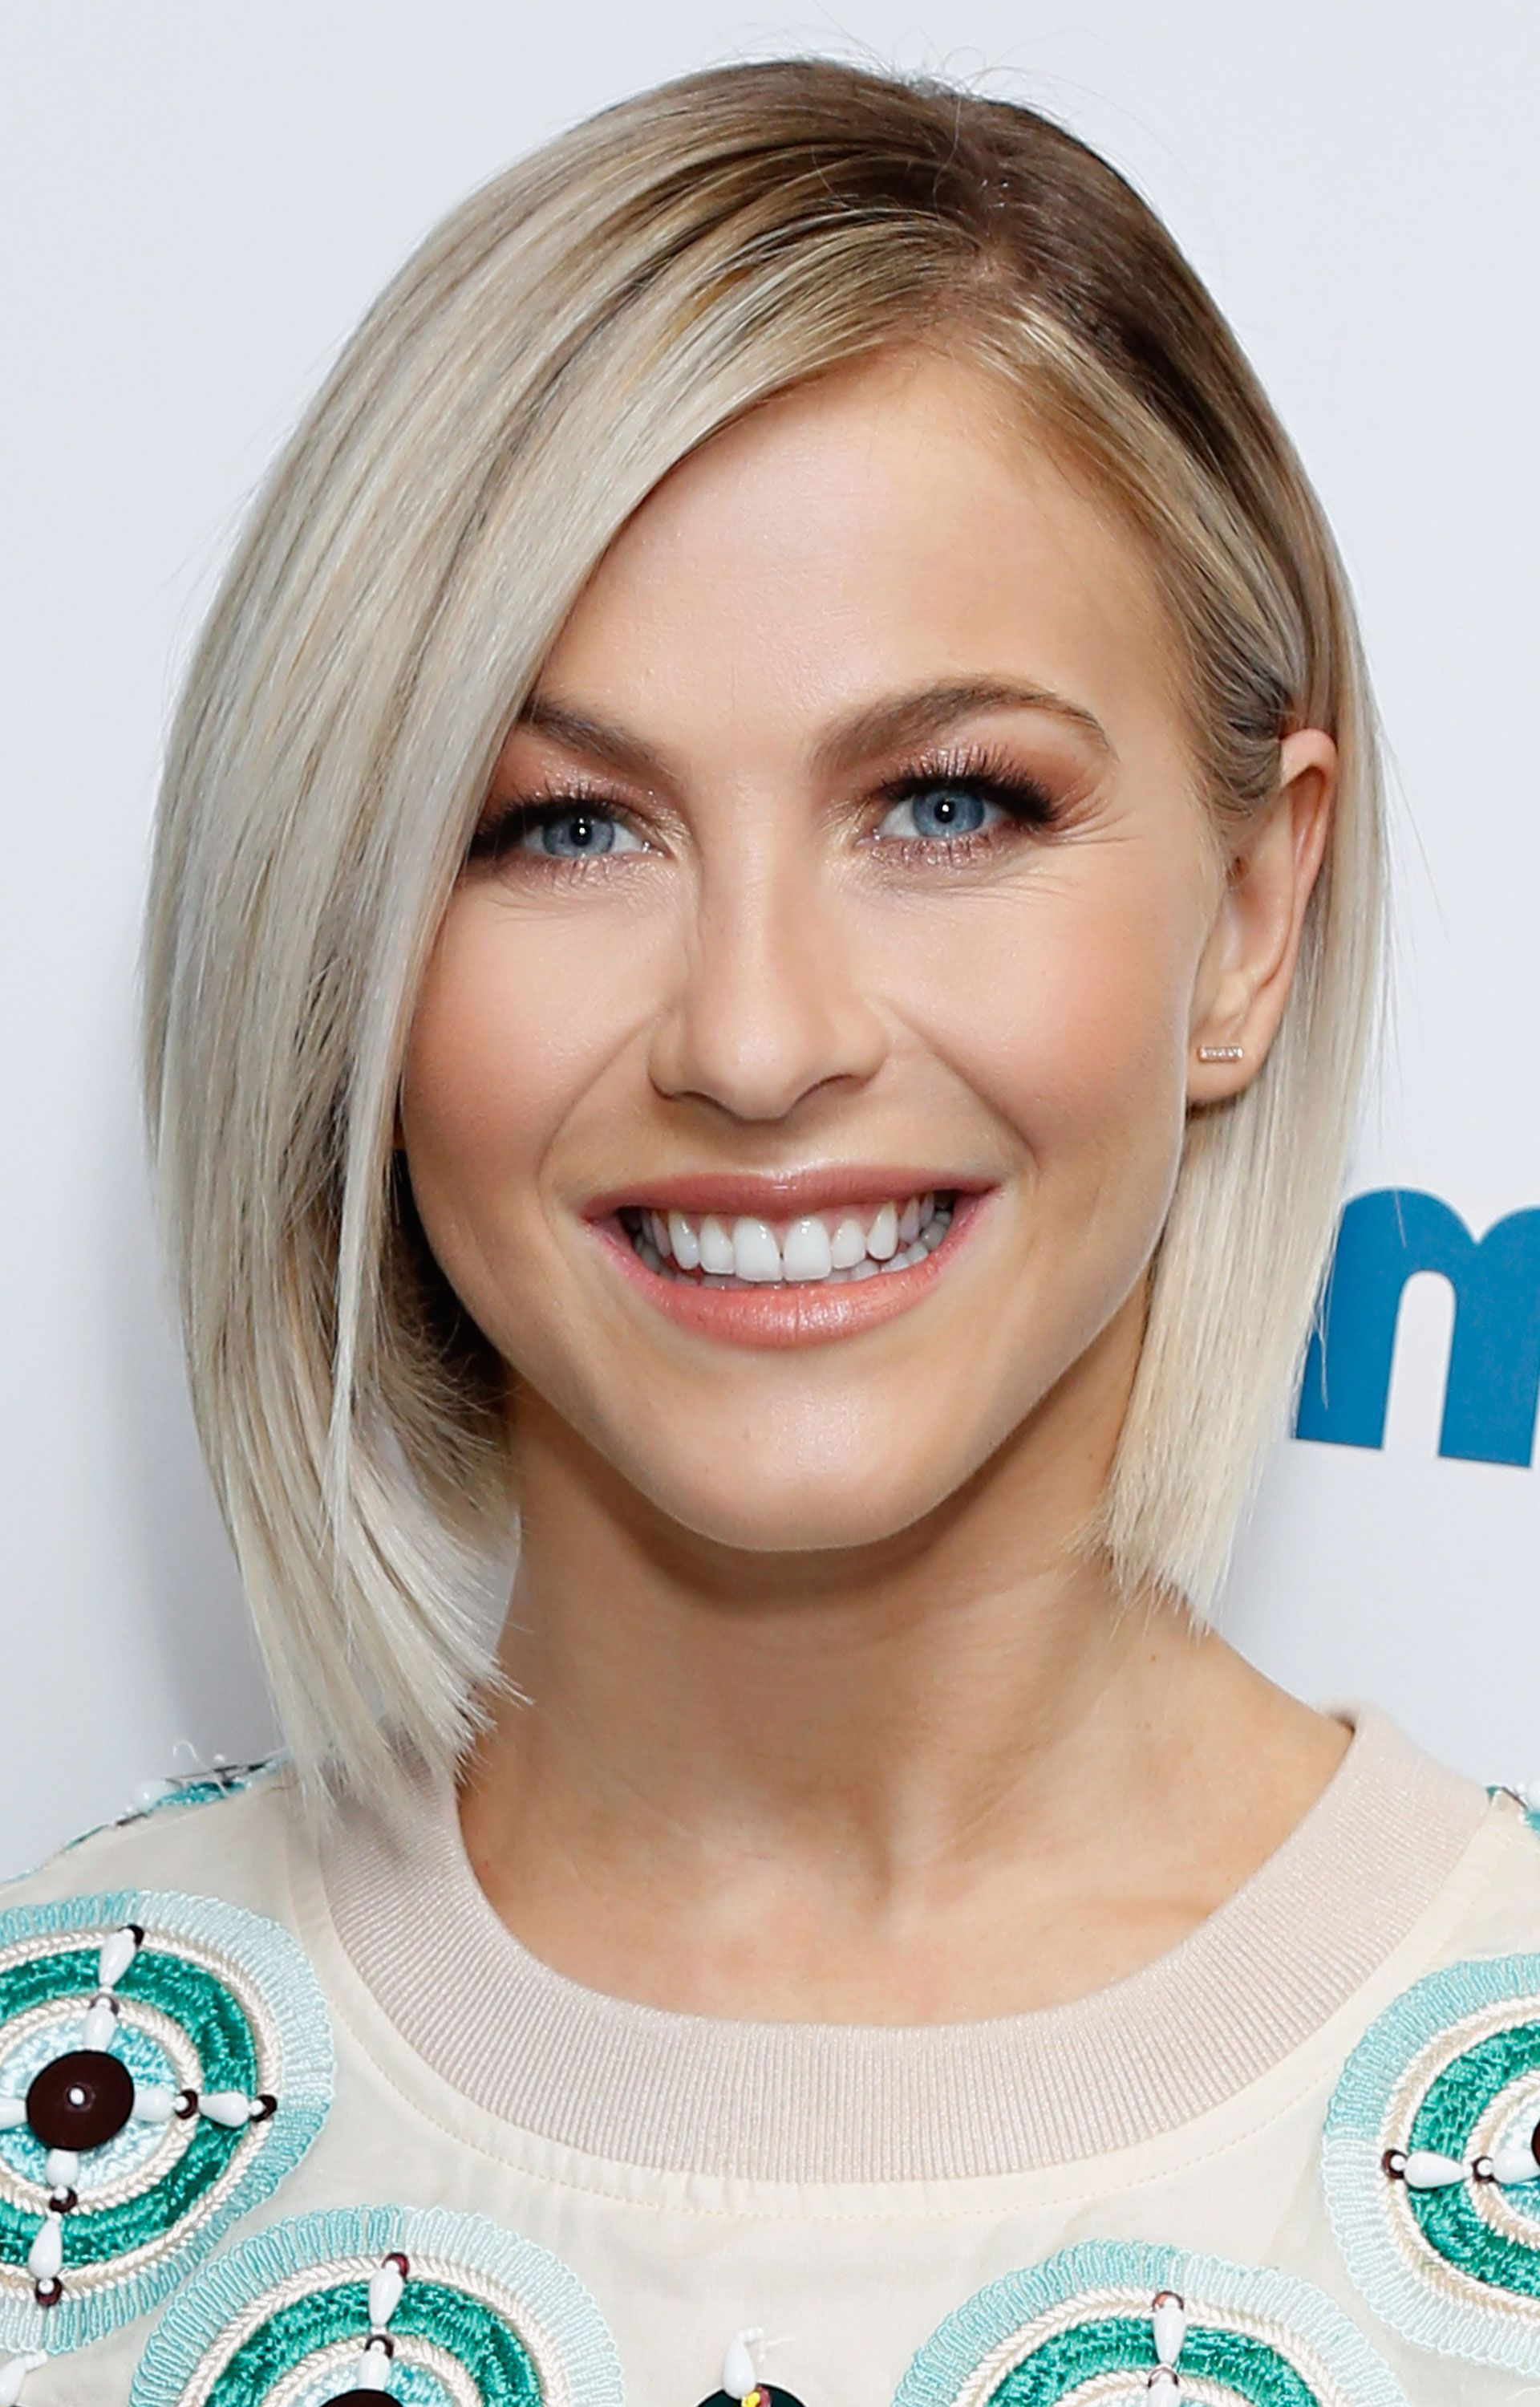 45 Hairstyles For Round Faces – Best Haircuts For Round Face Shape With Simple Short Haircuts For Round Faces (View 7 of 25)